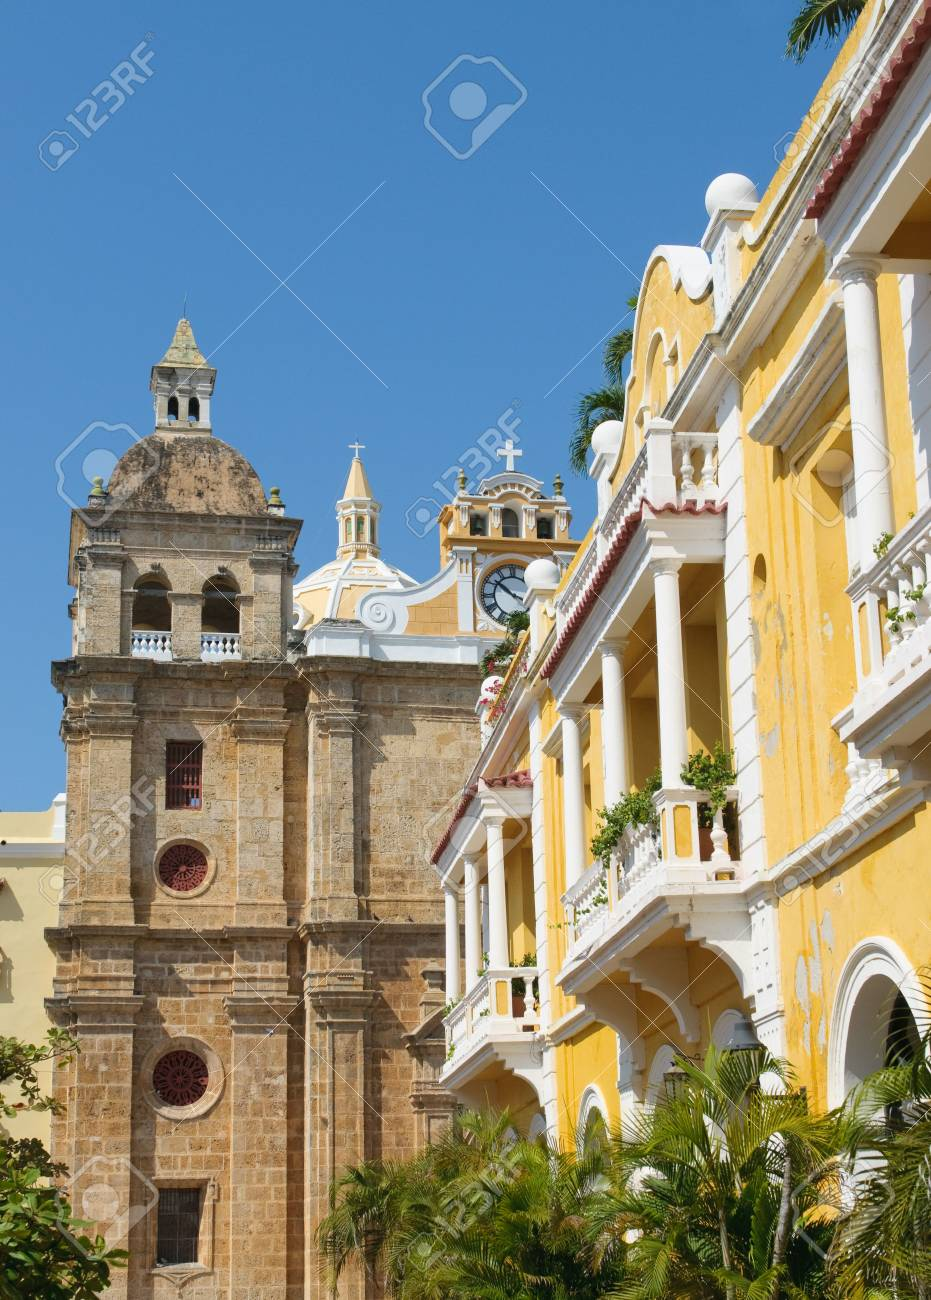 Streets of Cartagena, Colombia Stock Photo - 6270220